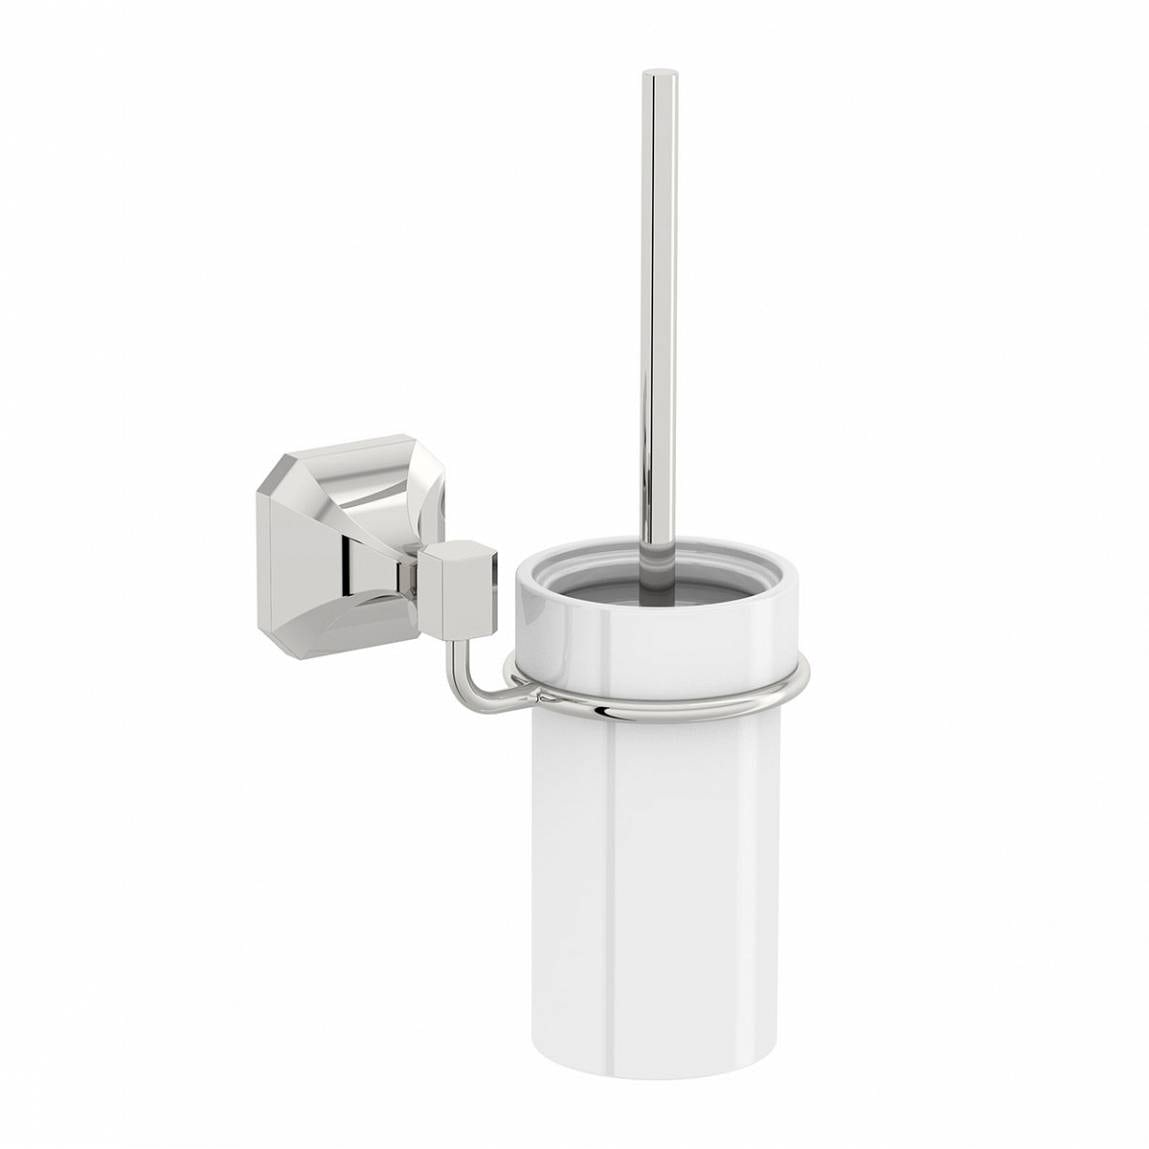 The Bath Co. Camberley toilet brush and ceramic holder